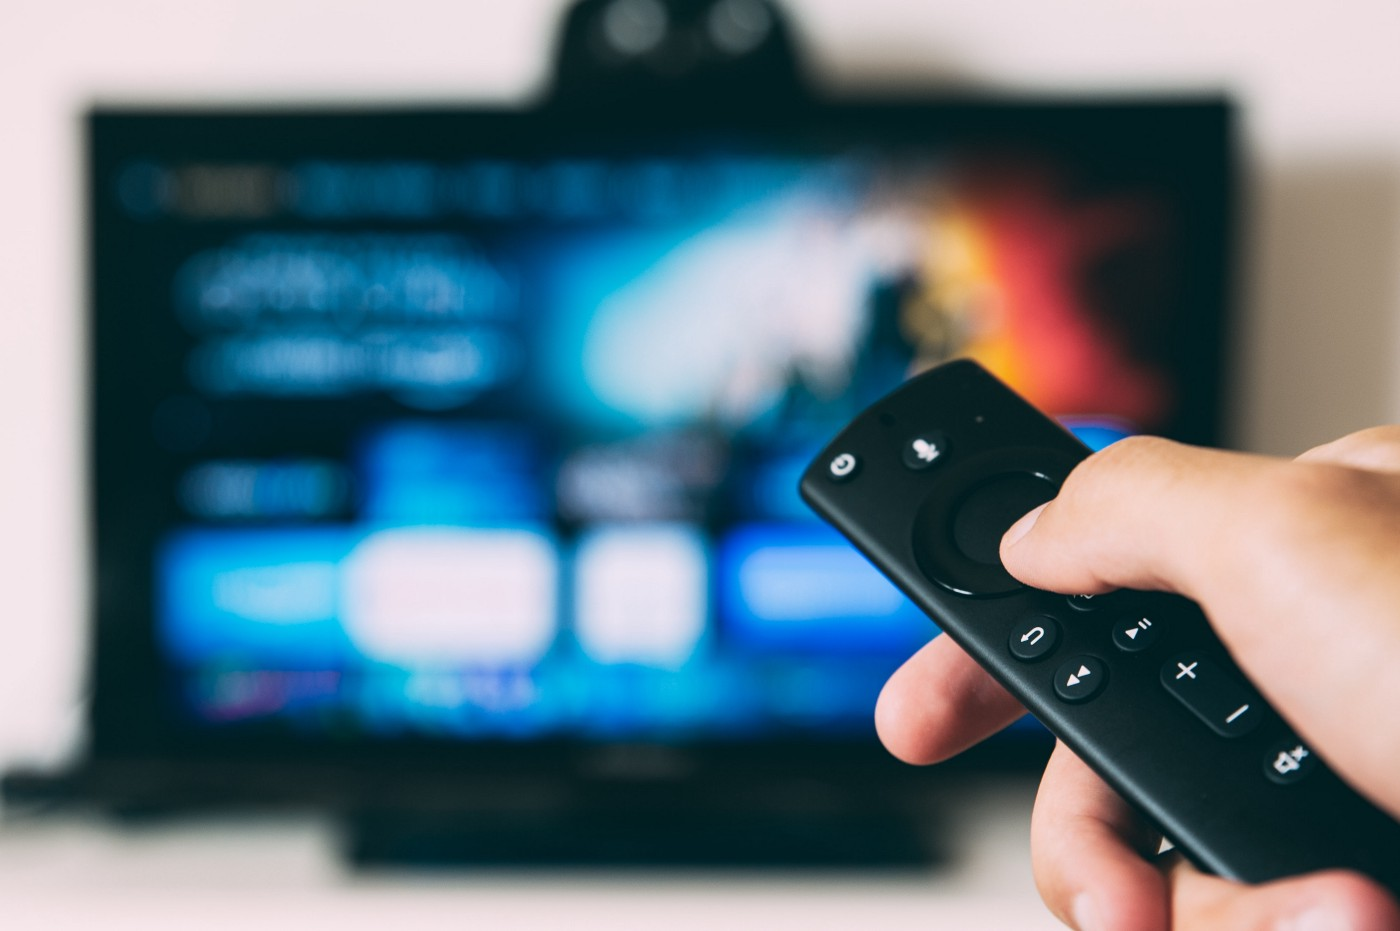 Hand holding a television remote. The television is blurred in the background.